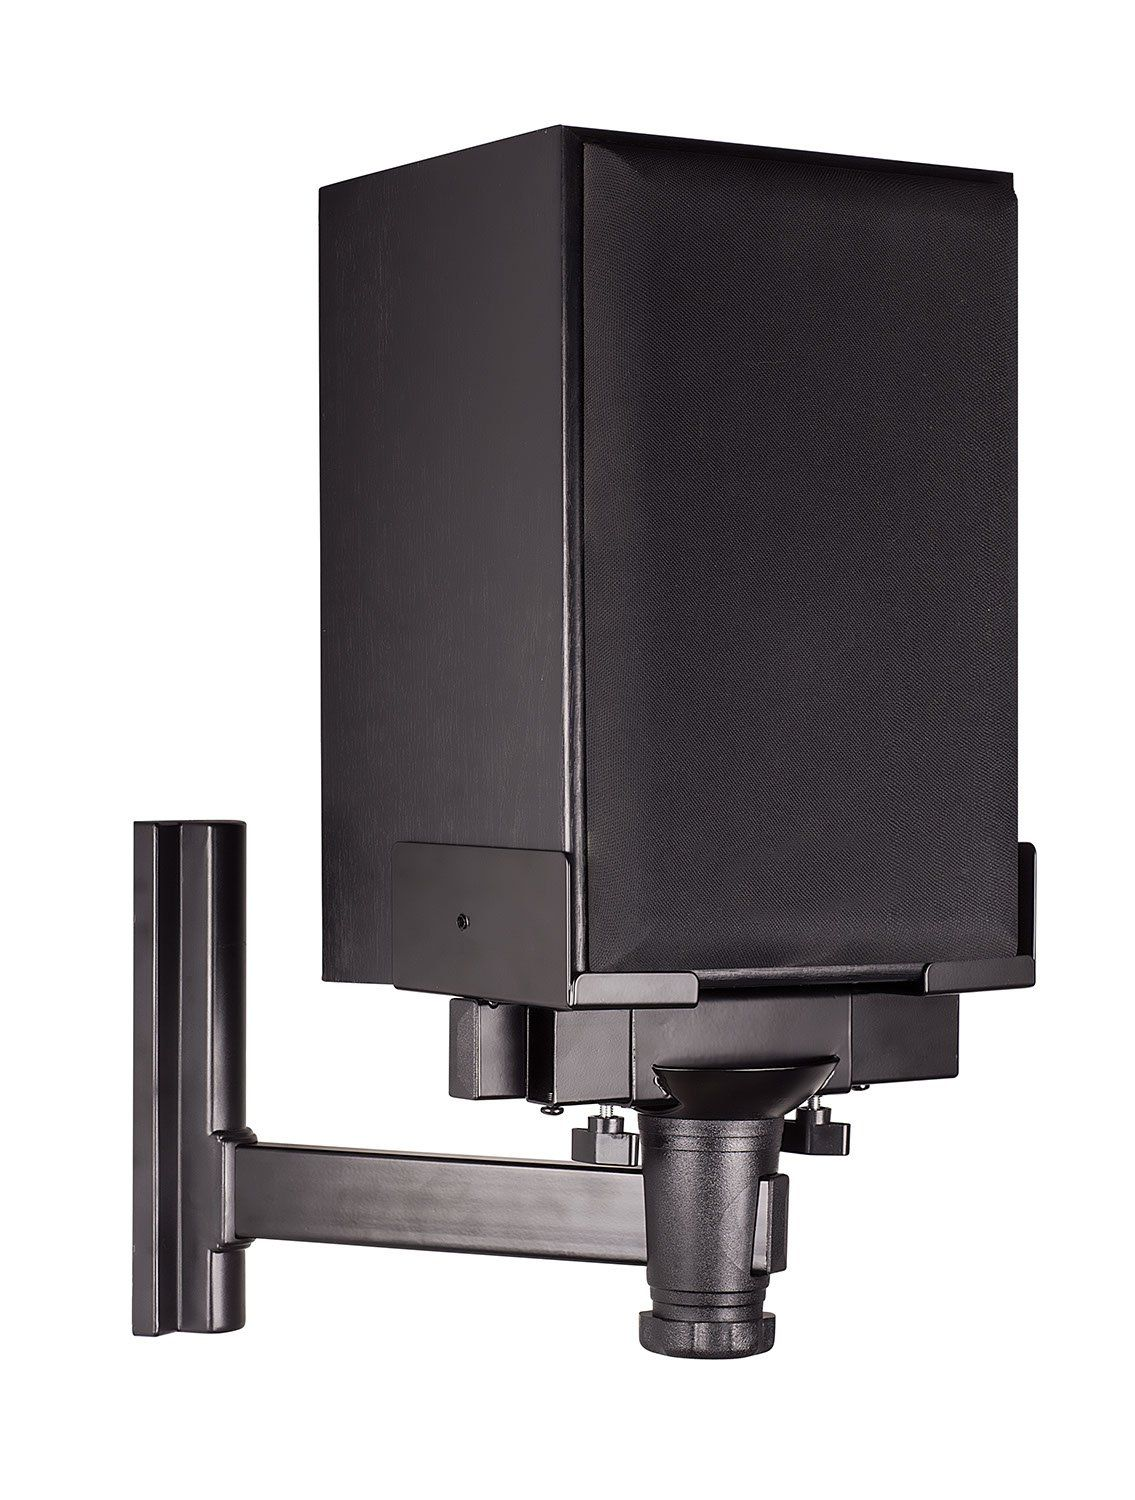 mount-it! speaker wall mount, universal side clamping bookshelf